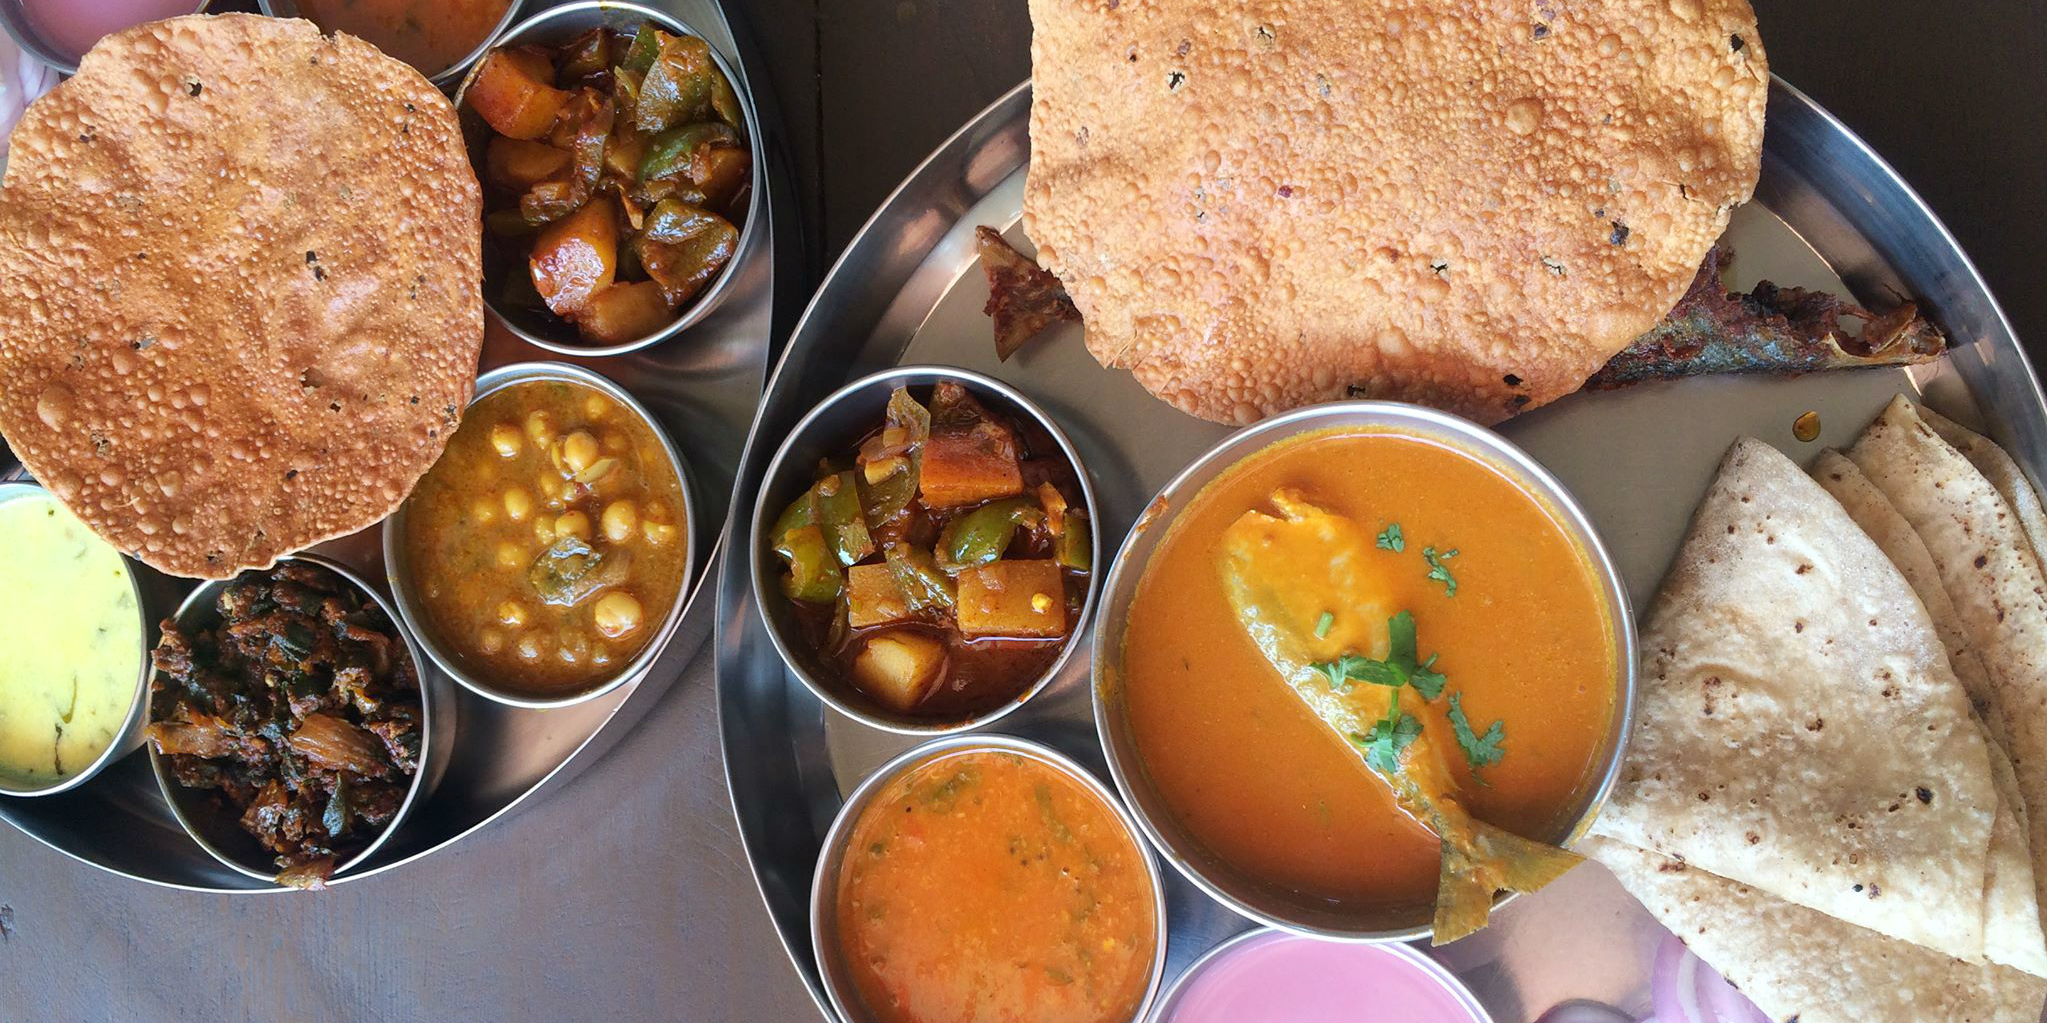 Travel to India and you'll be able to sample local cuisine.